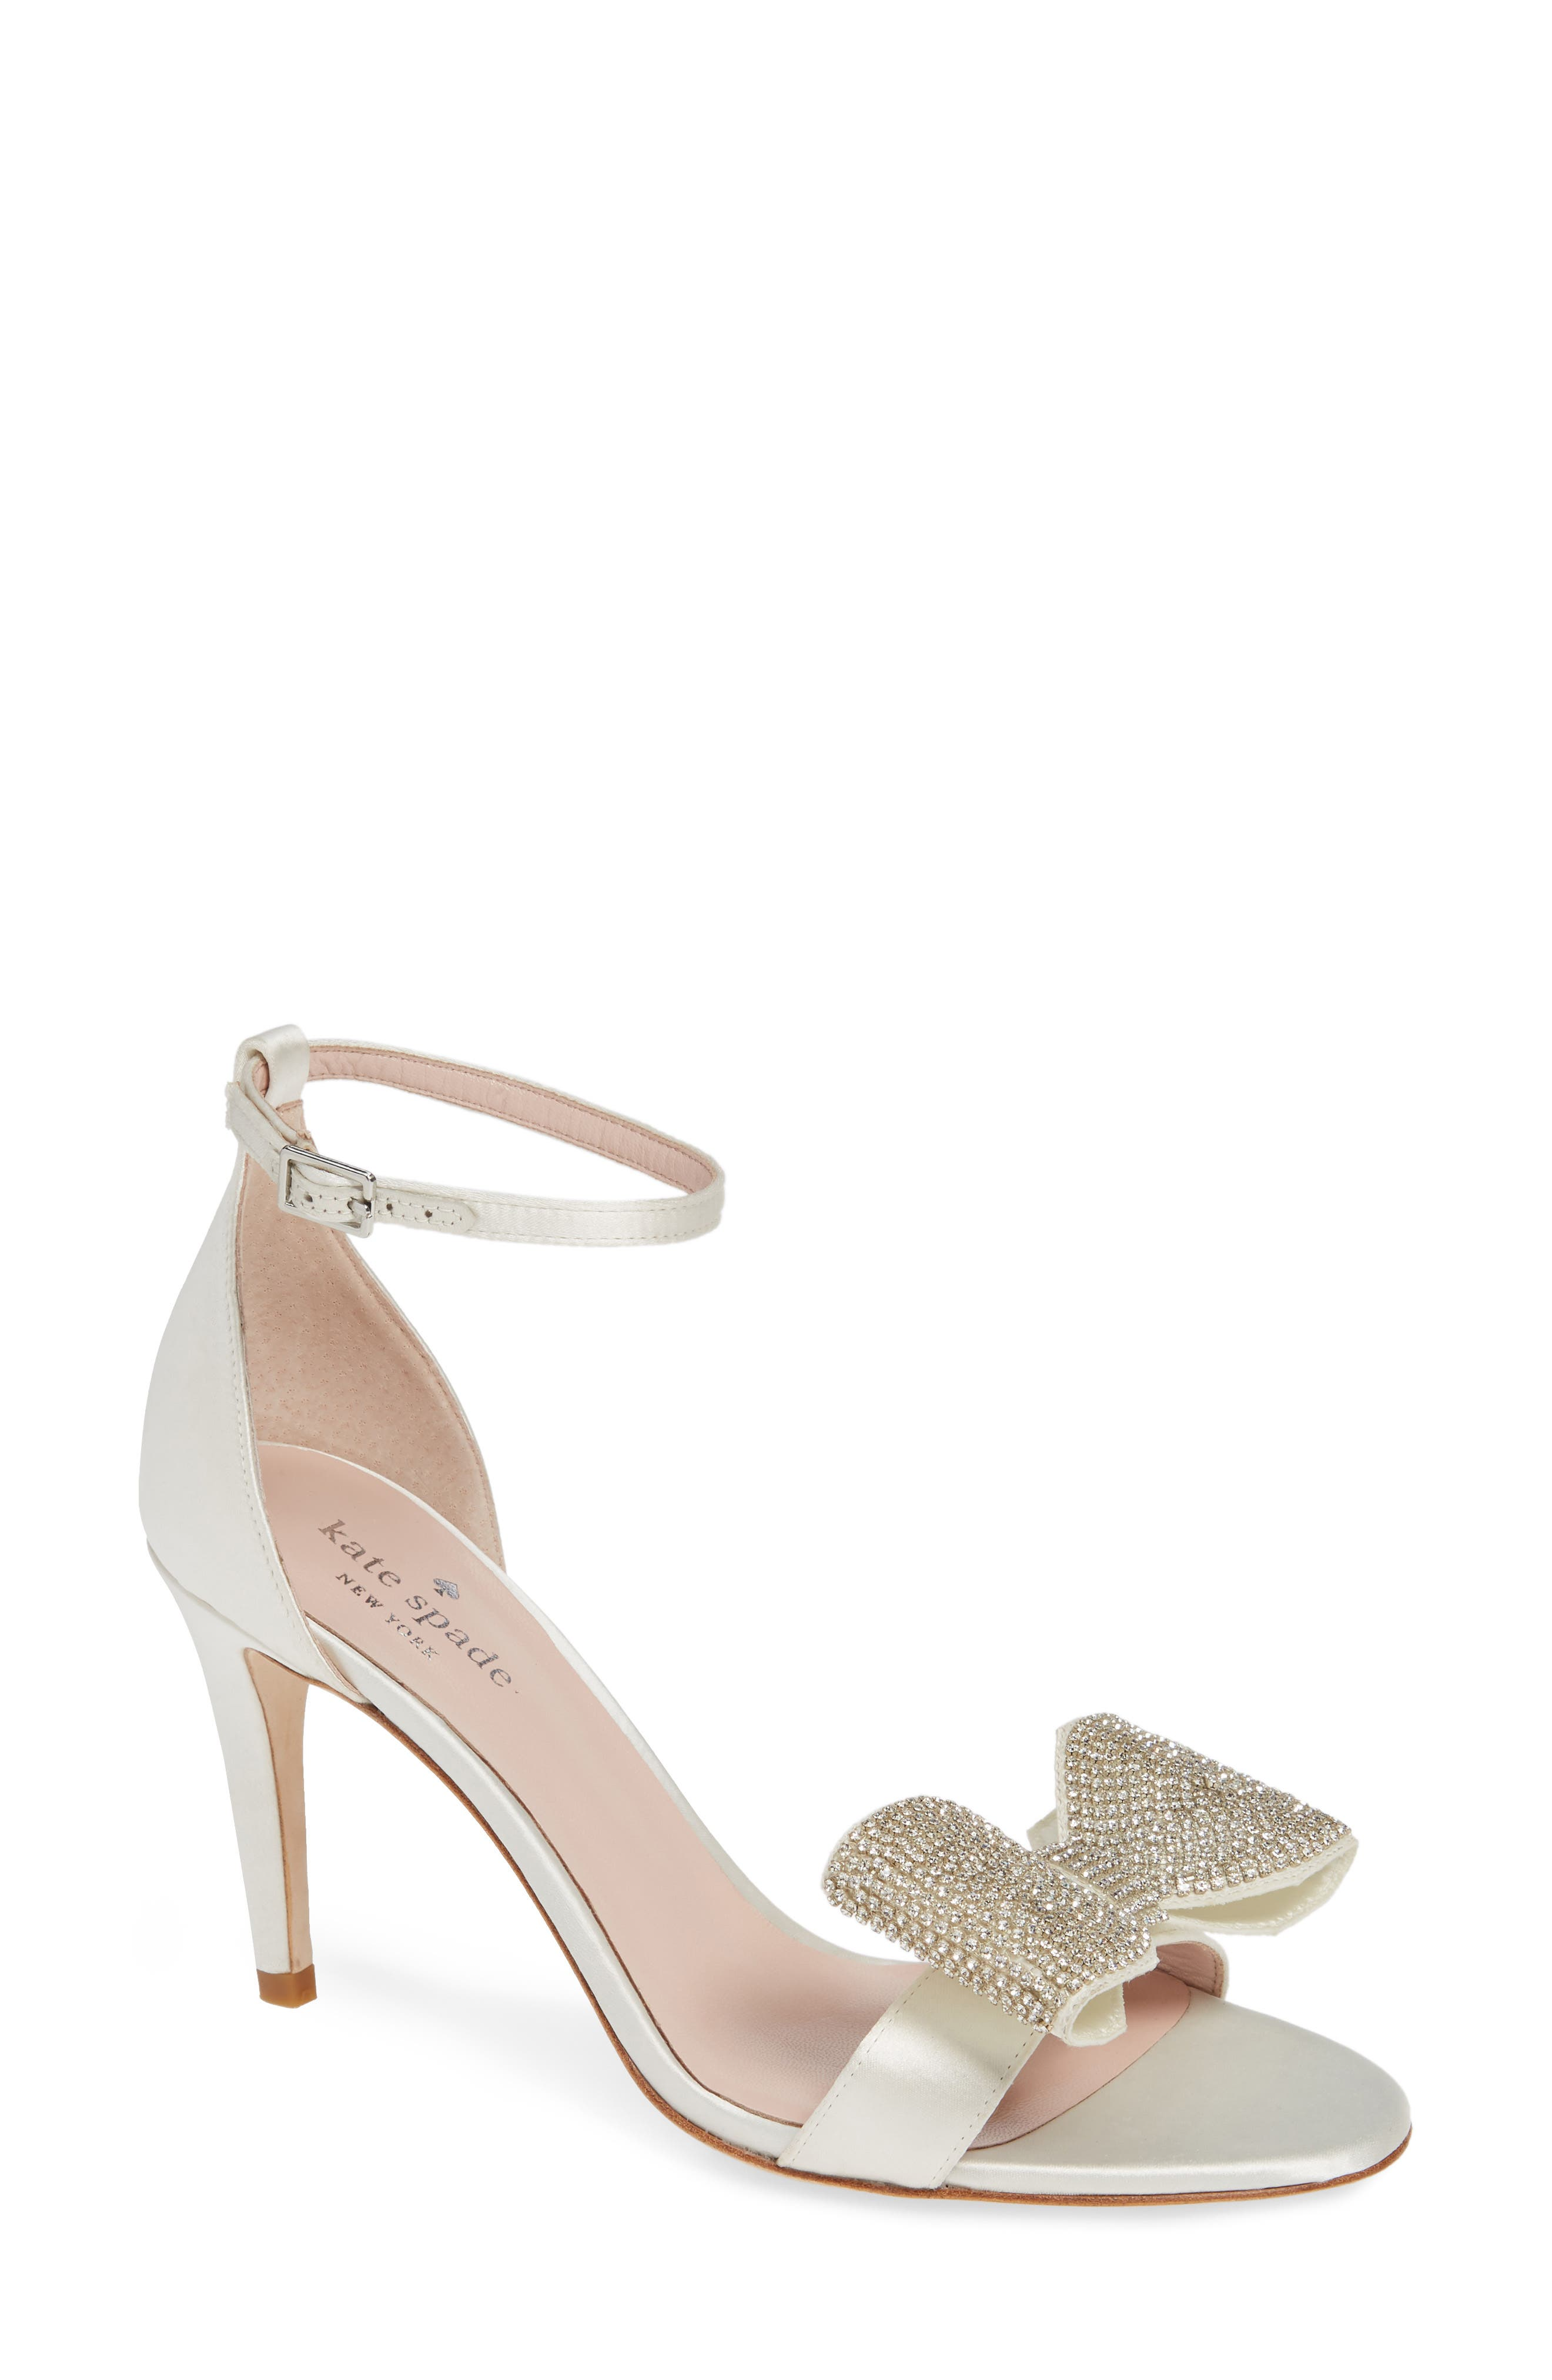 gweneth crystal bow ankle strap sandal, Main, color, 900